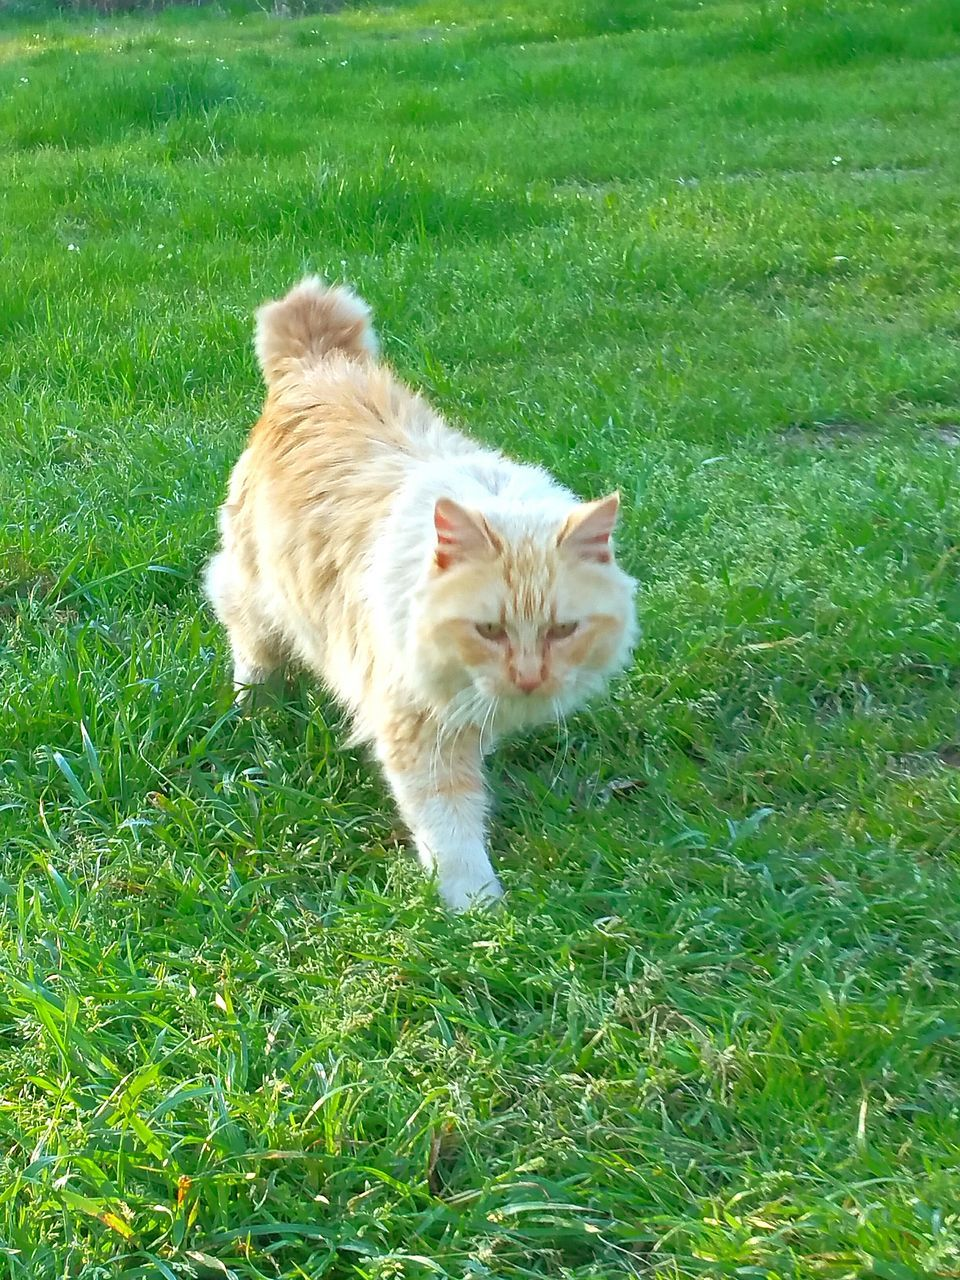 grass, domestic cat, pets, domestic animals, animal themes, one animal, mammal, feline, green color, high angle view, day, outdoors, no people, nature, portrait